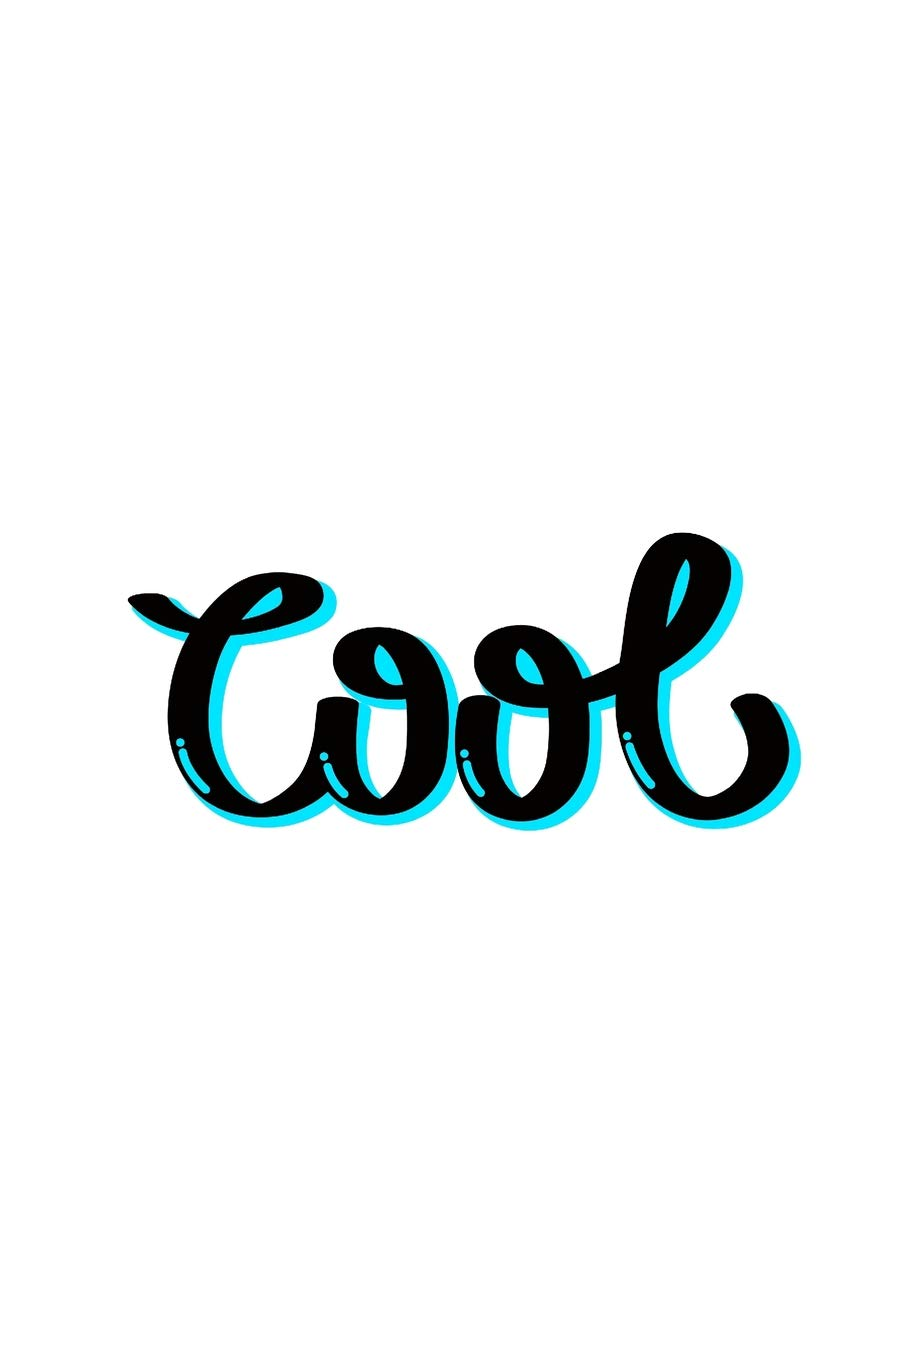 Cool White Background Images